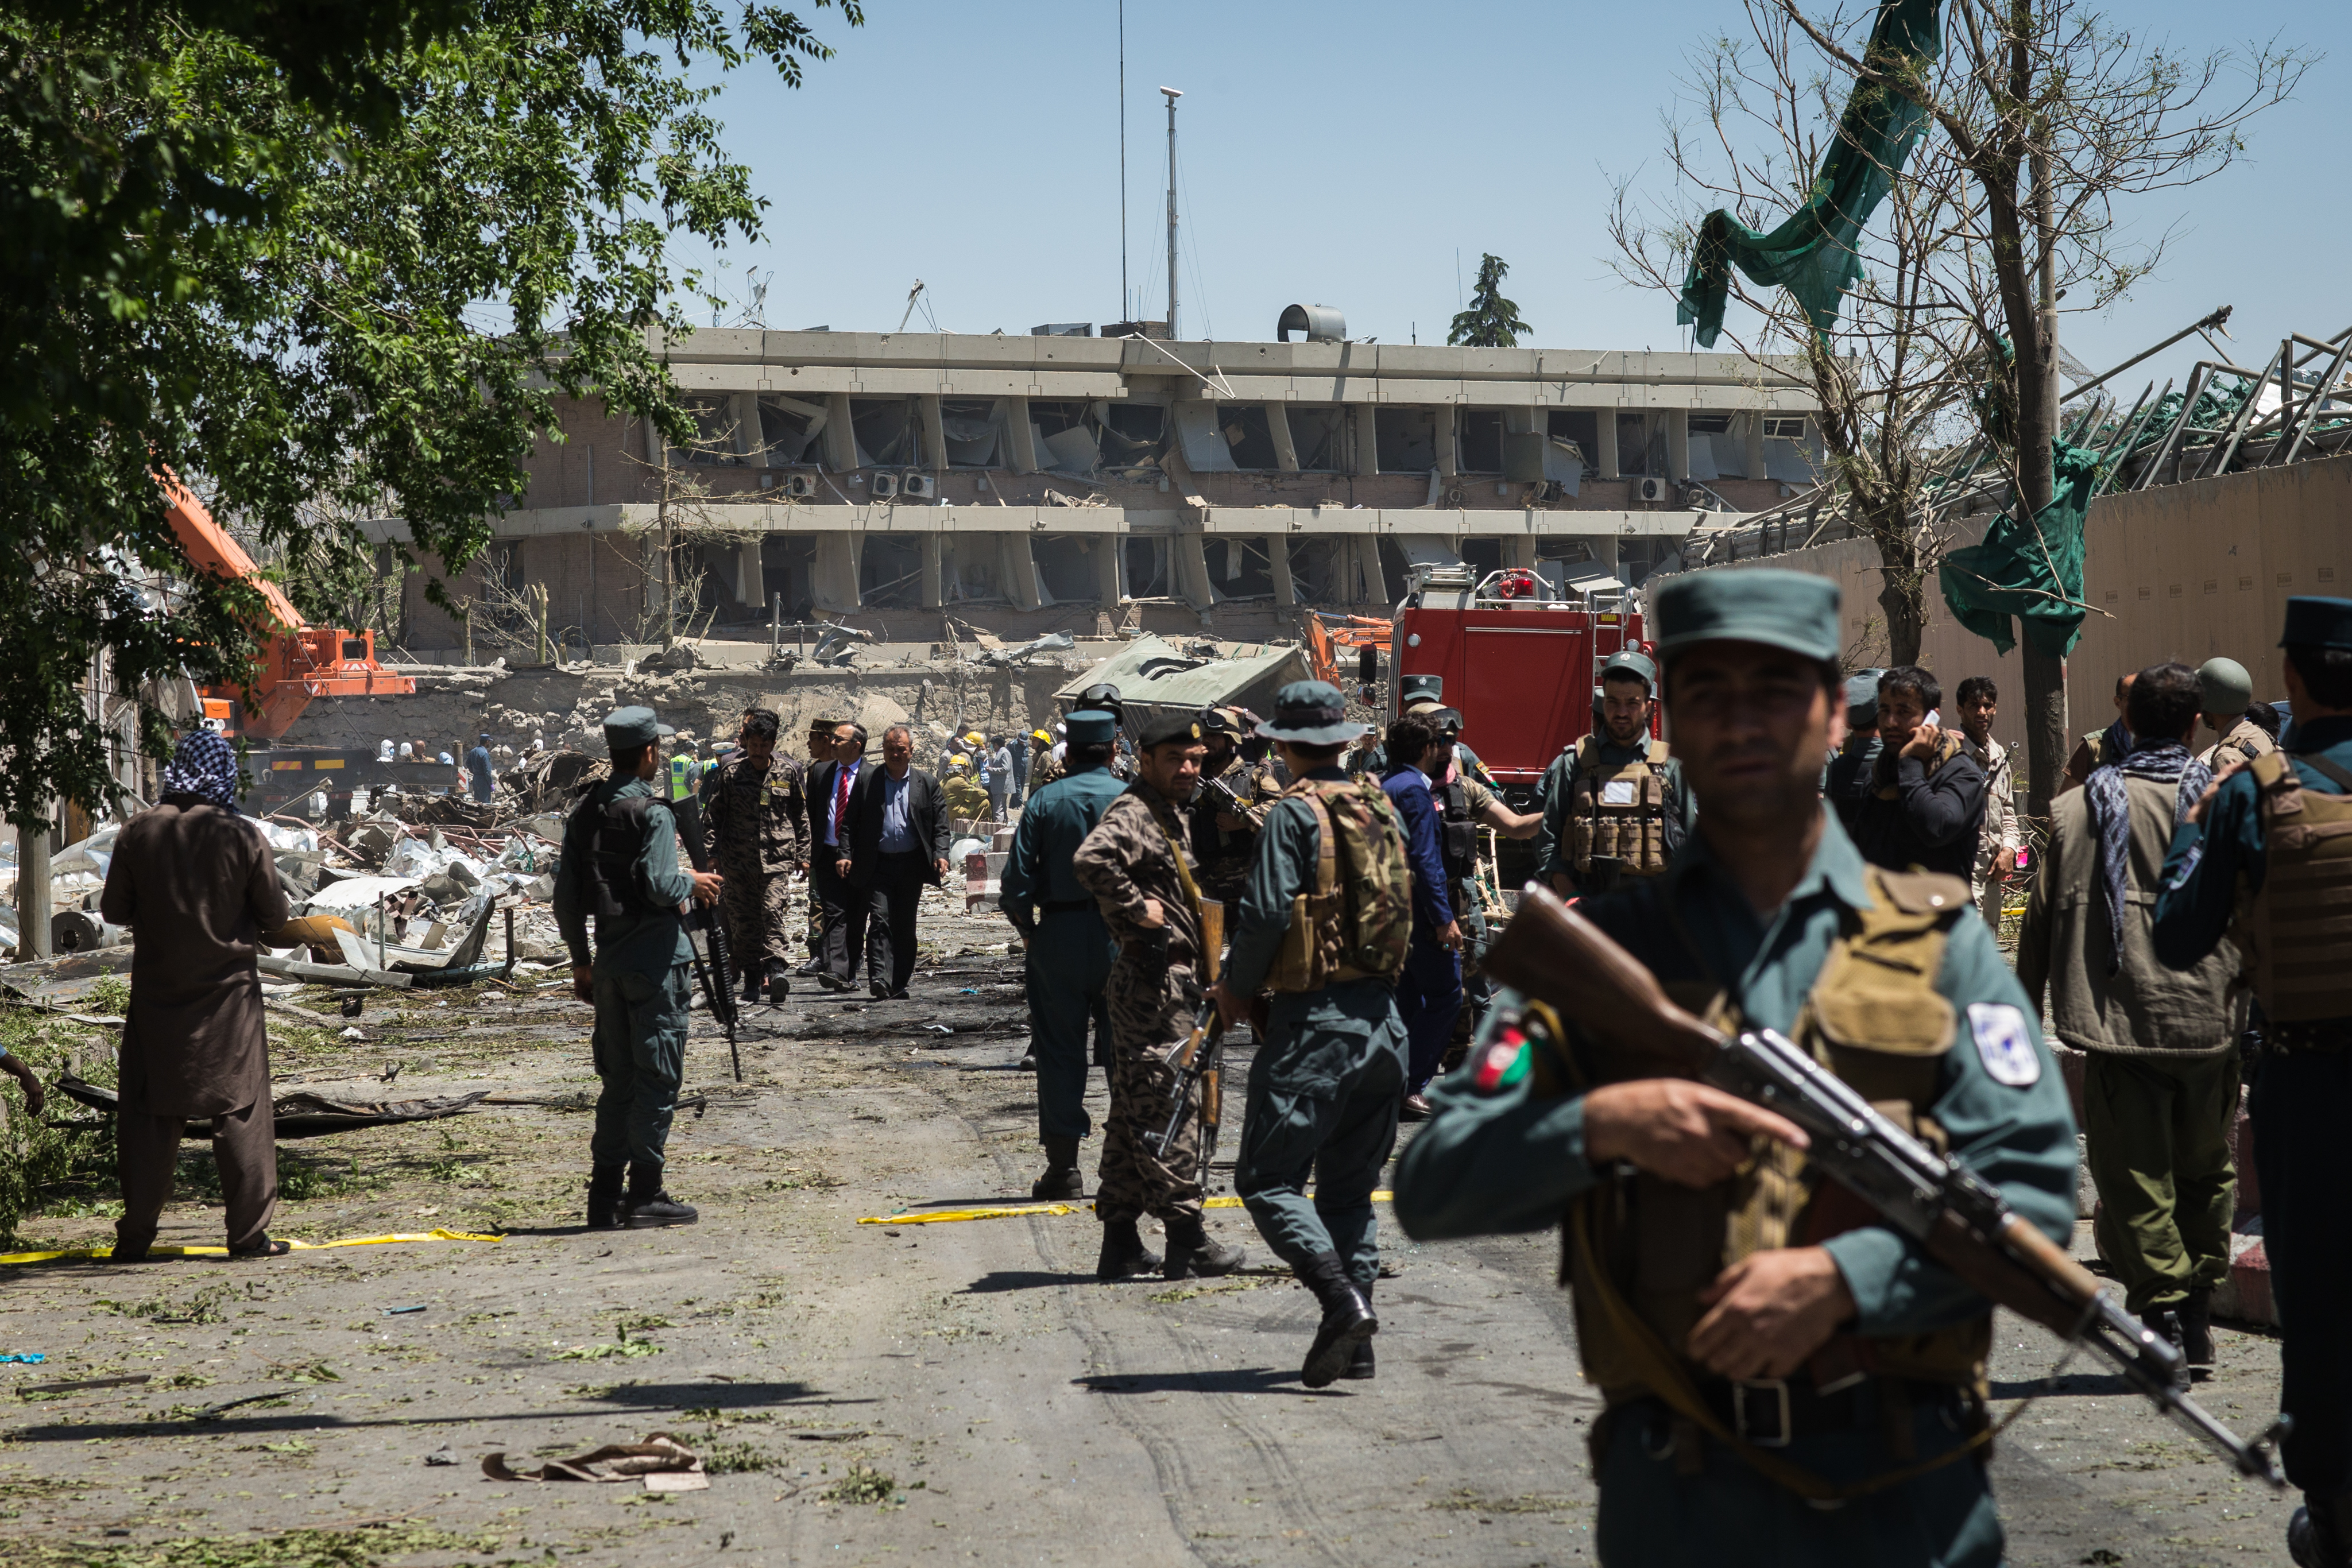 Damage from a blast that detonated in the diplomatic district in Kabul, Afghanistan